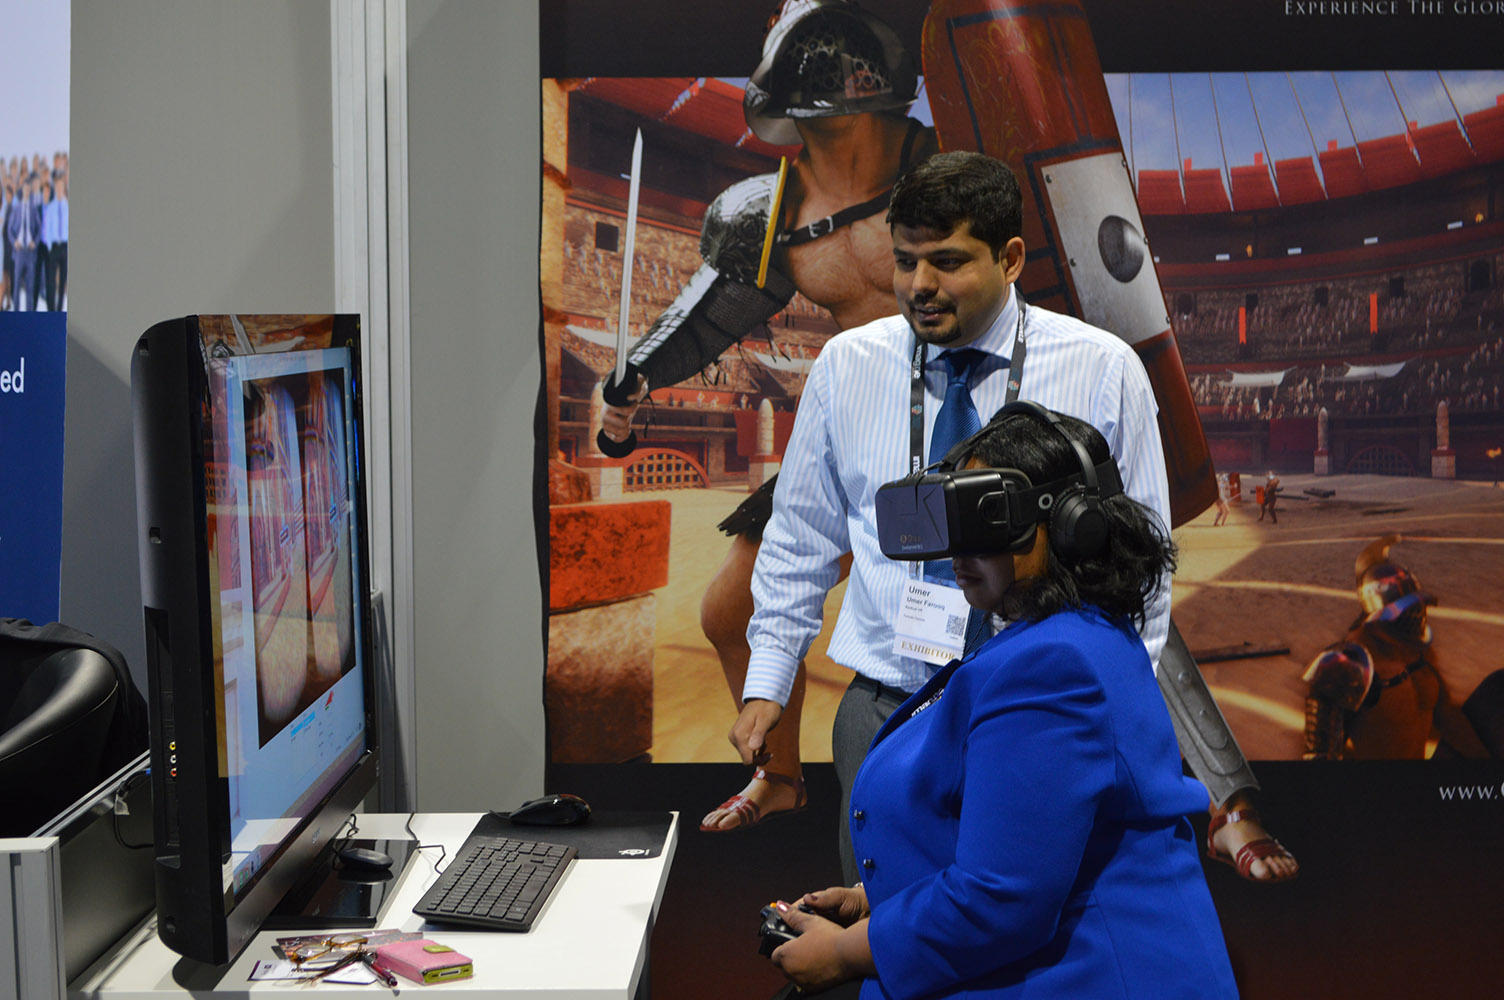 Colosseum Lives debuts at the AAM Expo 2015 in Atlanta